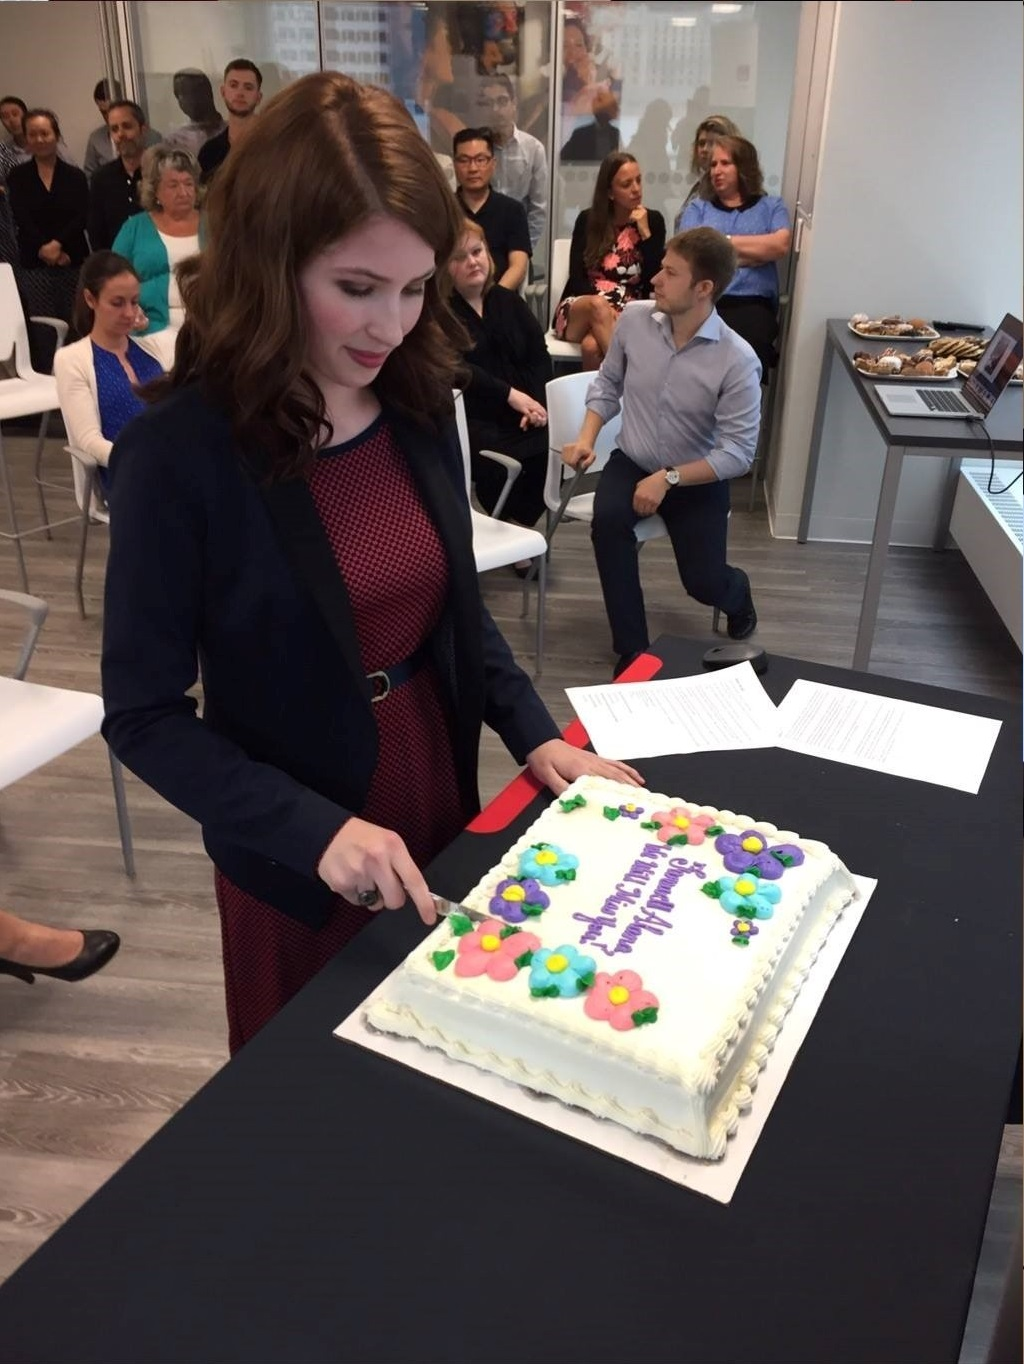 Couvrette cutting a cake with a group of people behind her